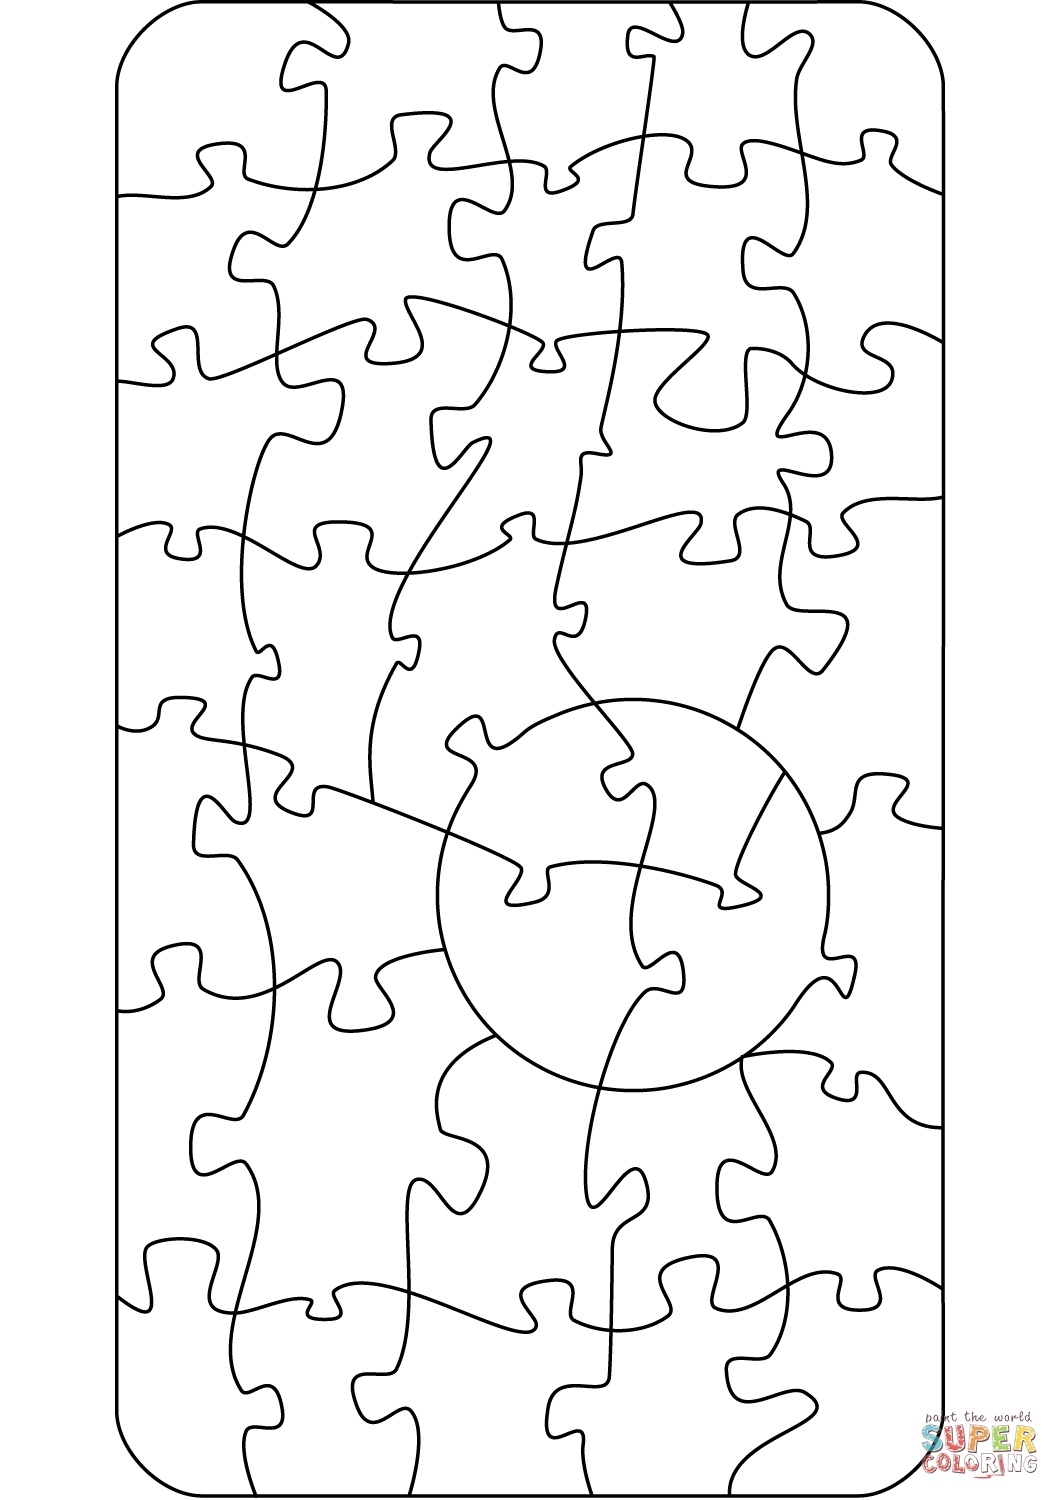 1060x1500 Best Of Jigsaw Puzzle Coloring Page Collection Printable